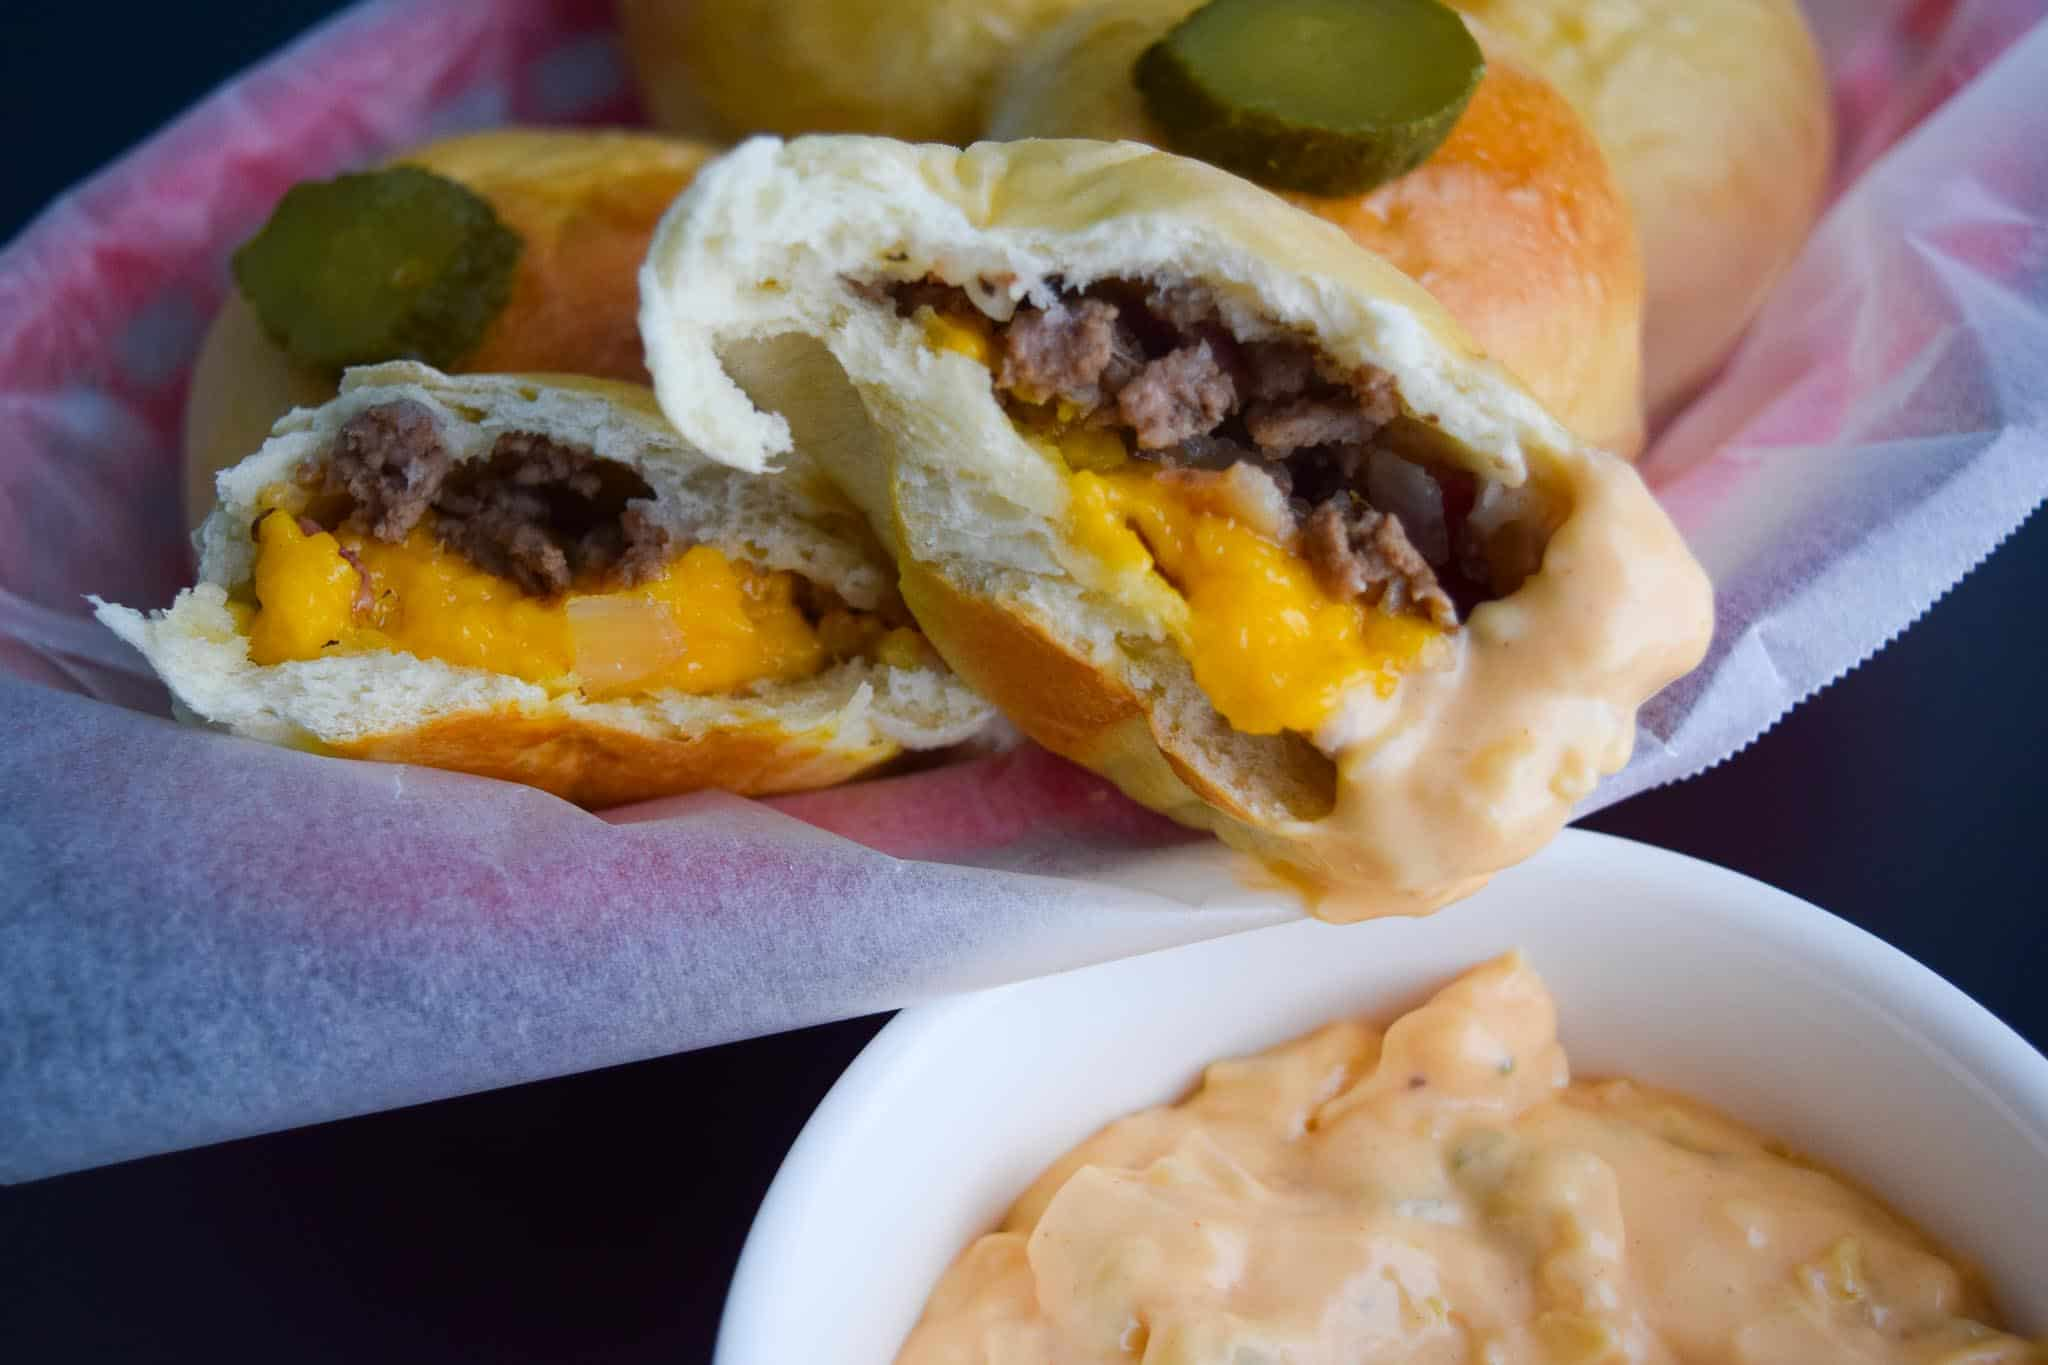 Bacon Cheeseburger Bombs with Big Mac Sauce